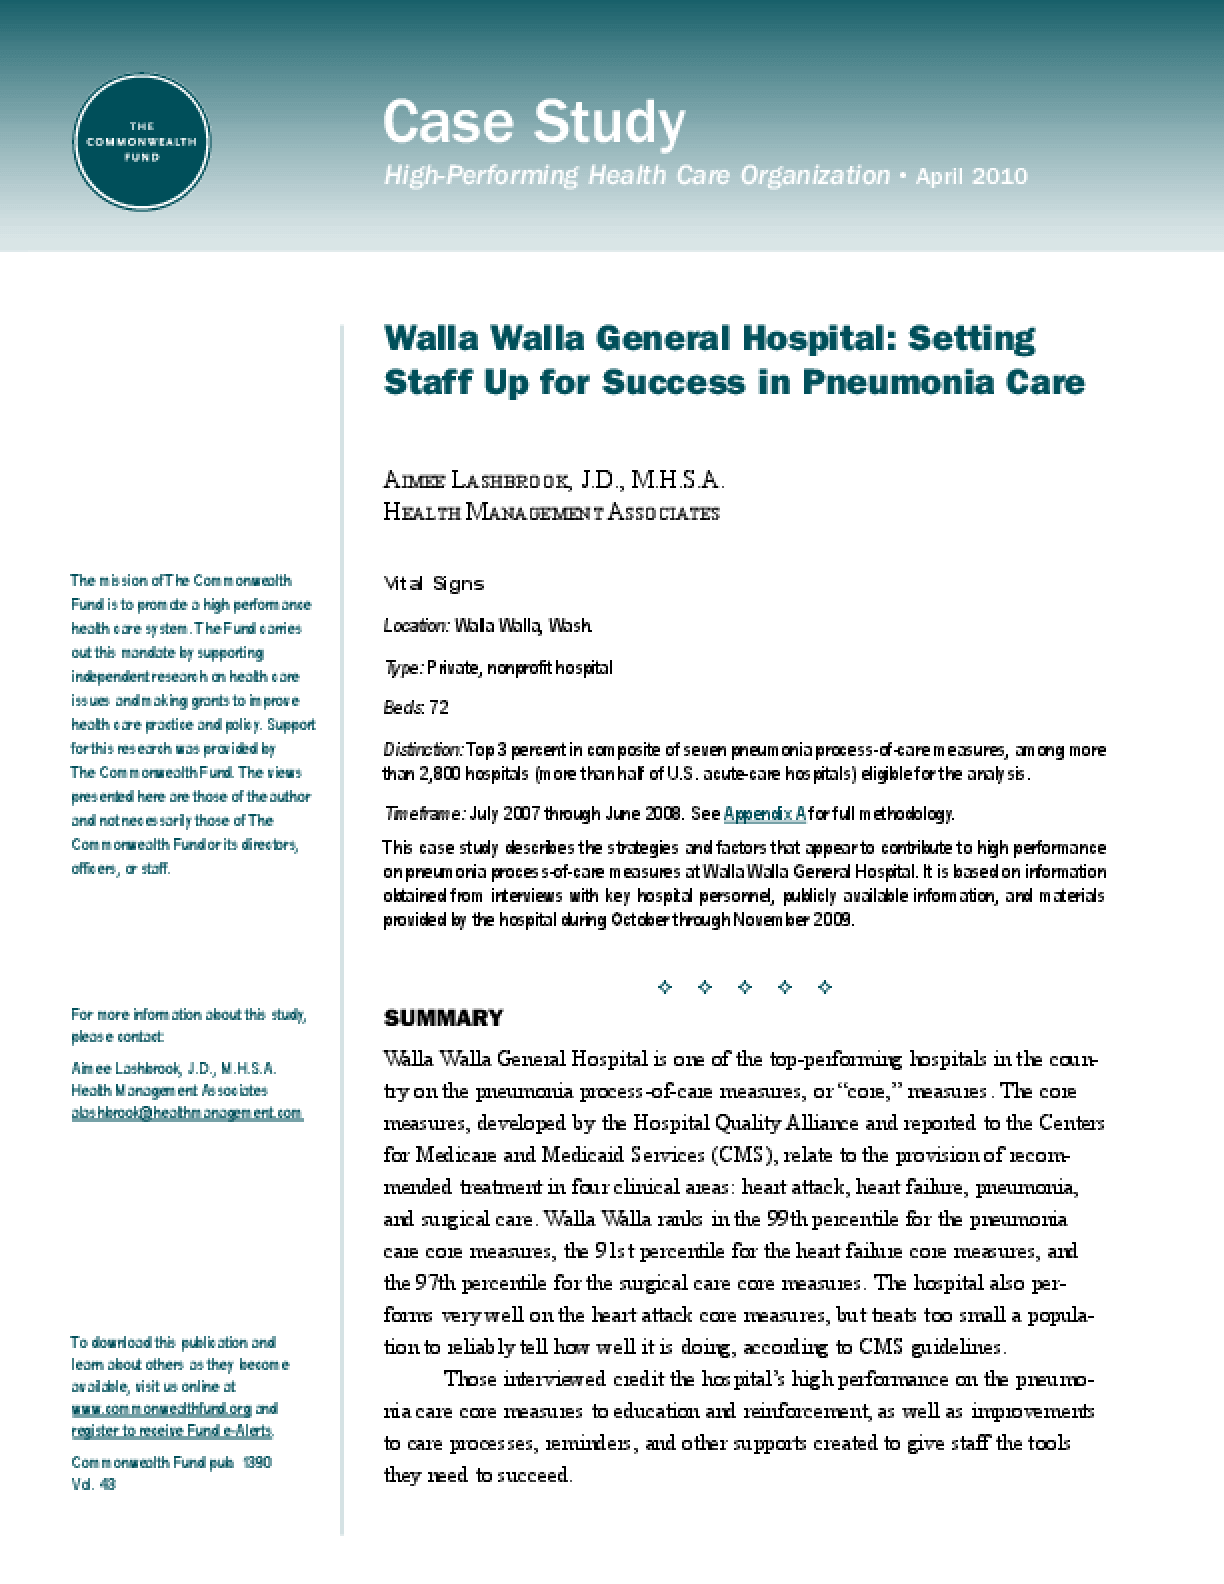 Walla Walla General Hospital: Setting Staff Up for Success in Pneumonia Care